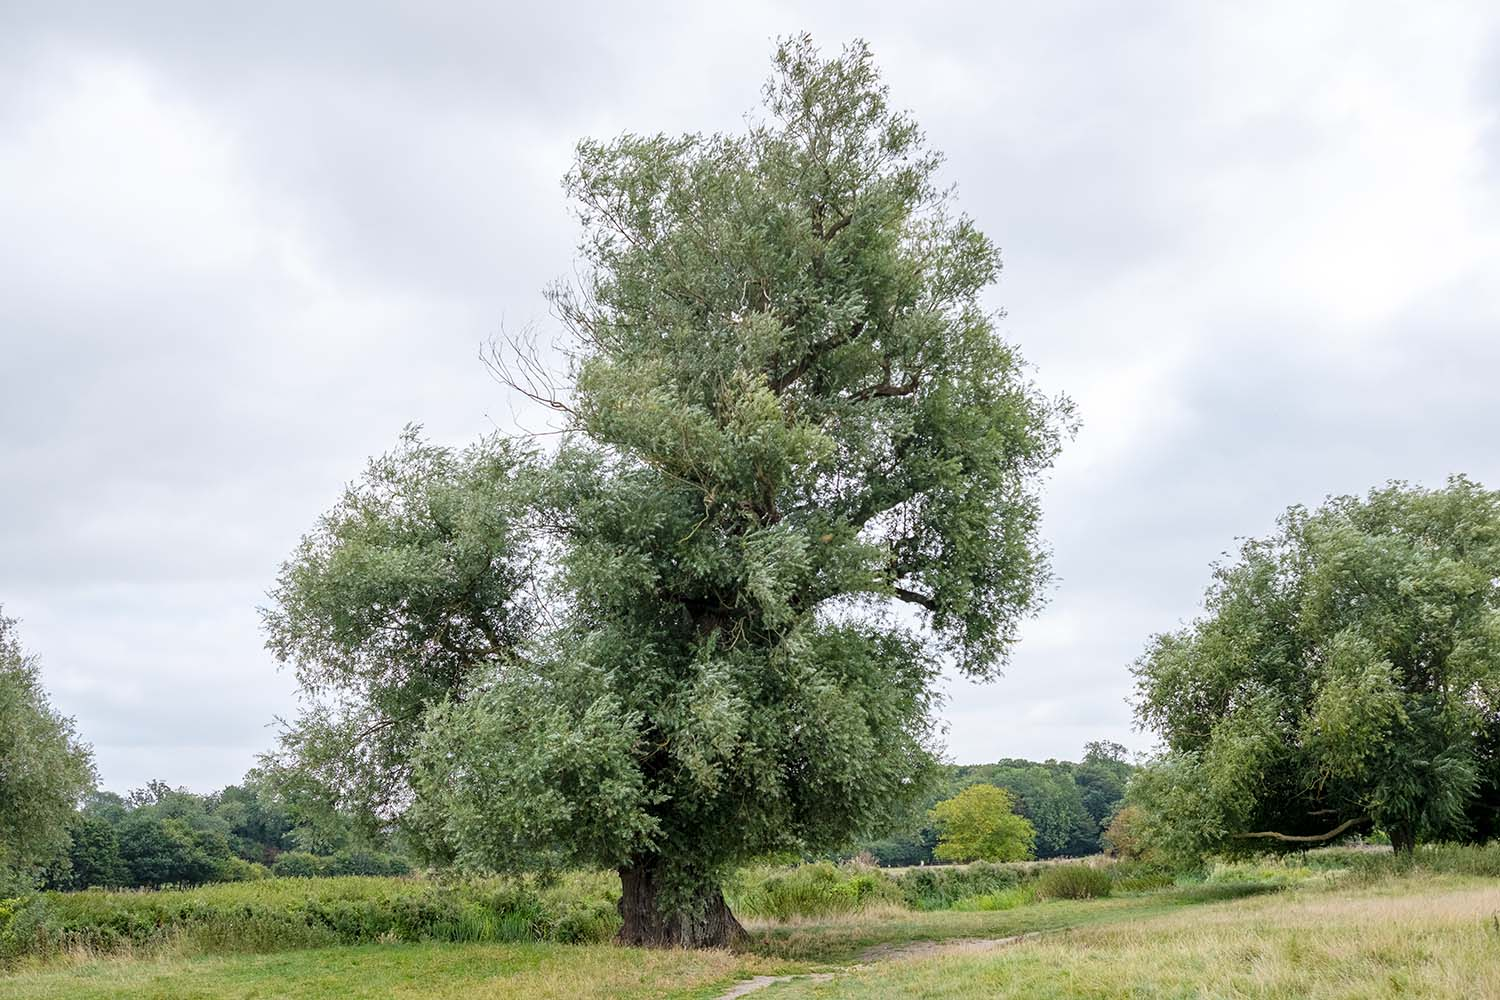 willow tree by the river Cam near Grantchester